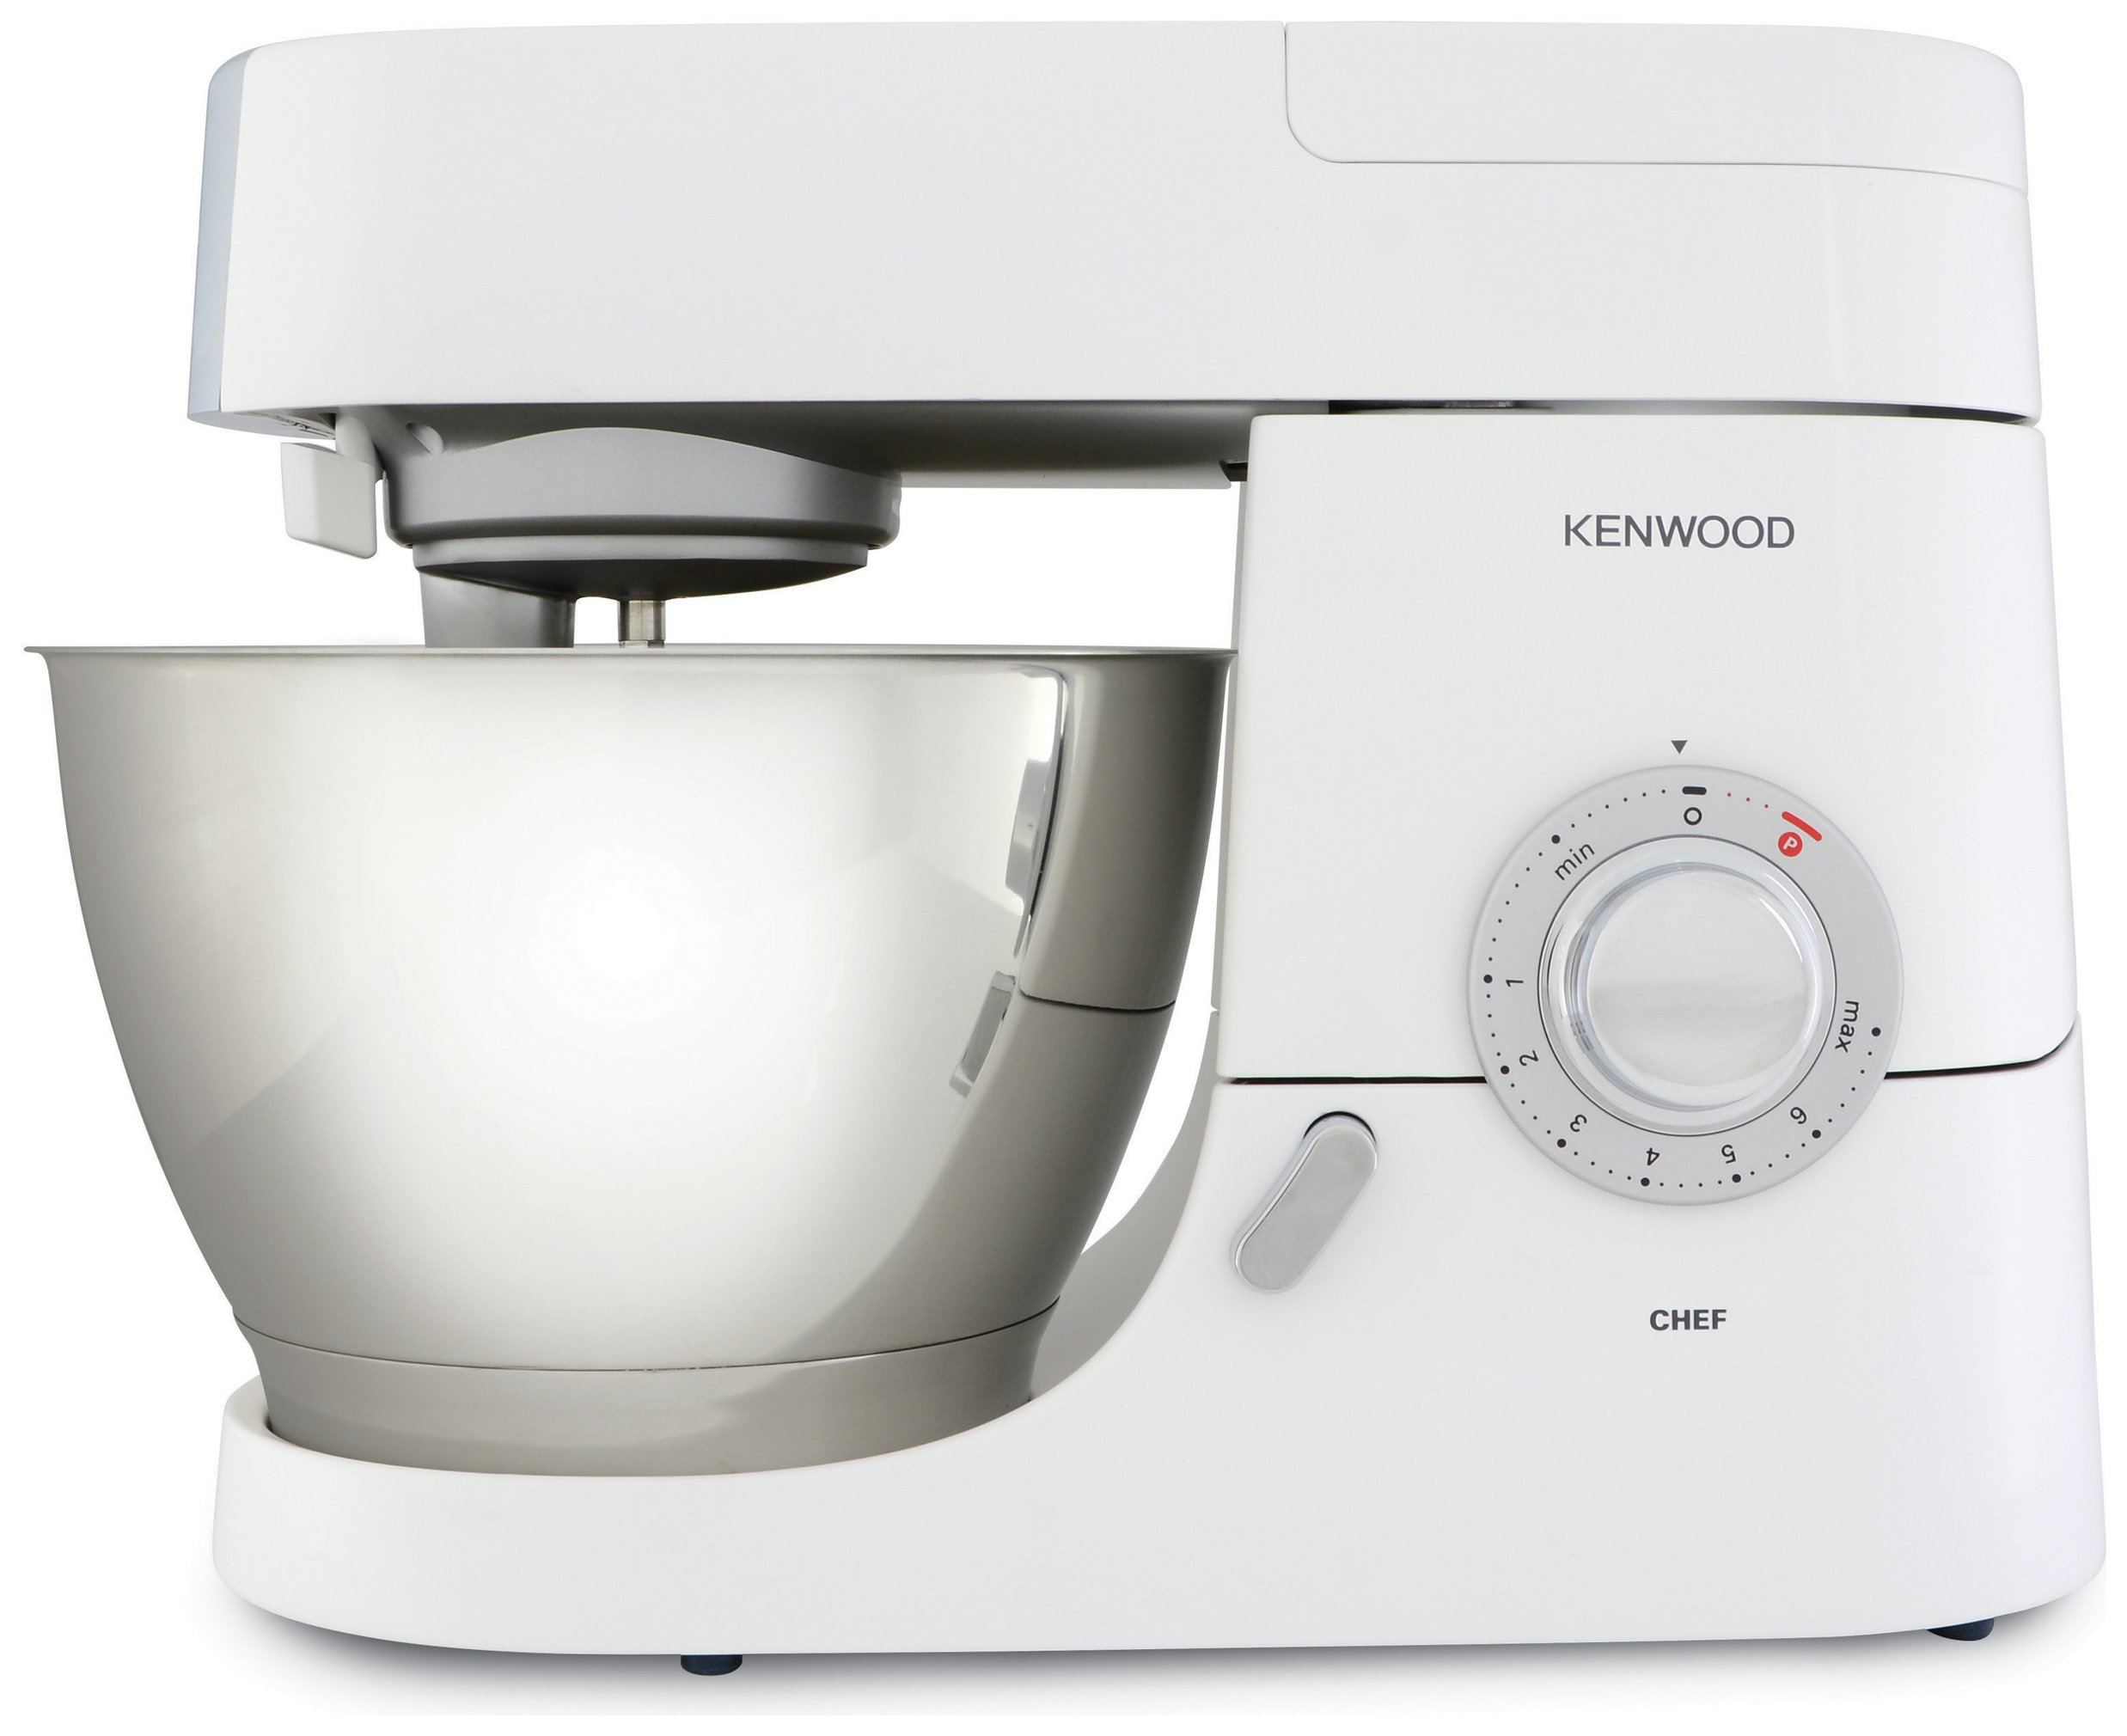 Kenwood kmc515 chef kitchen machine white octer for Cuisson vapeur kenwood cooking chef